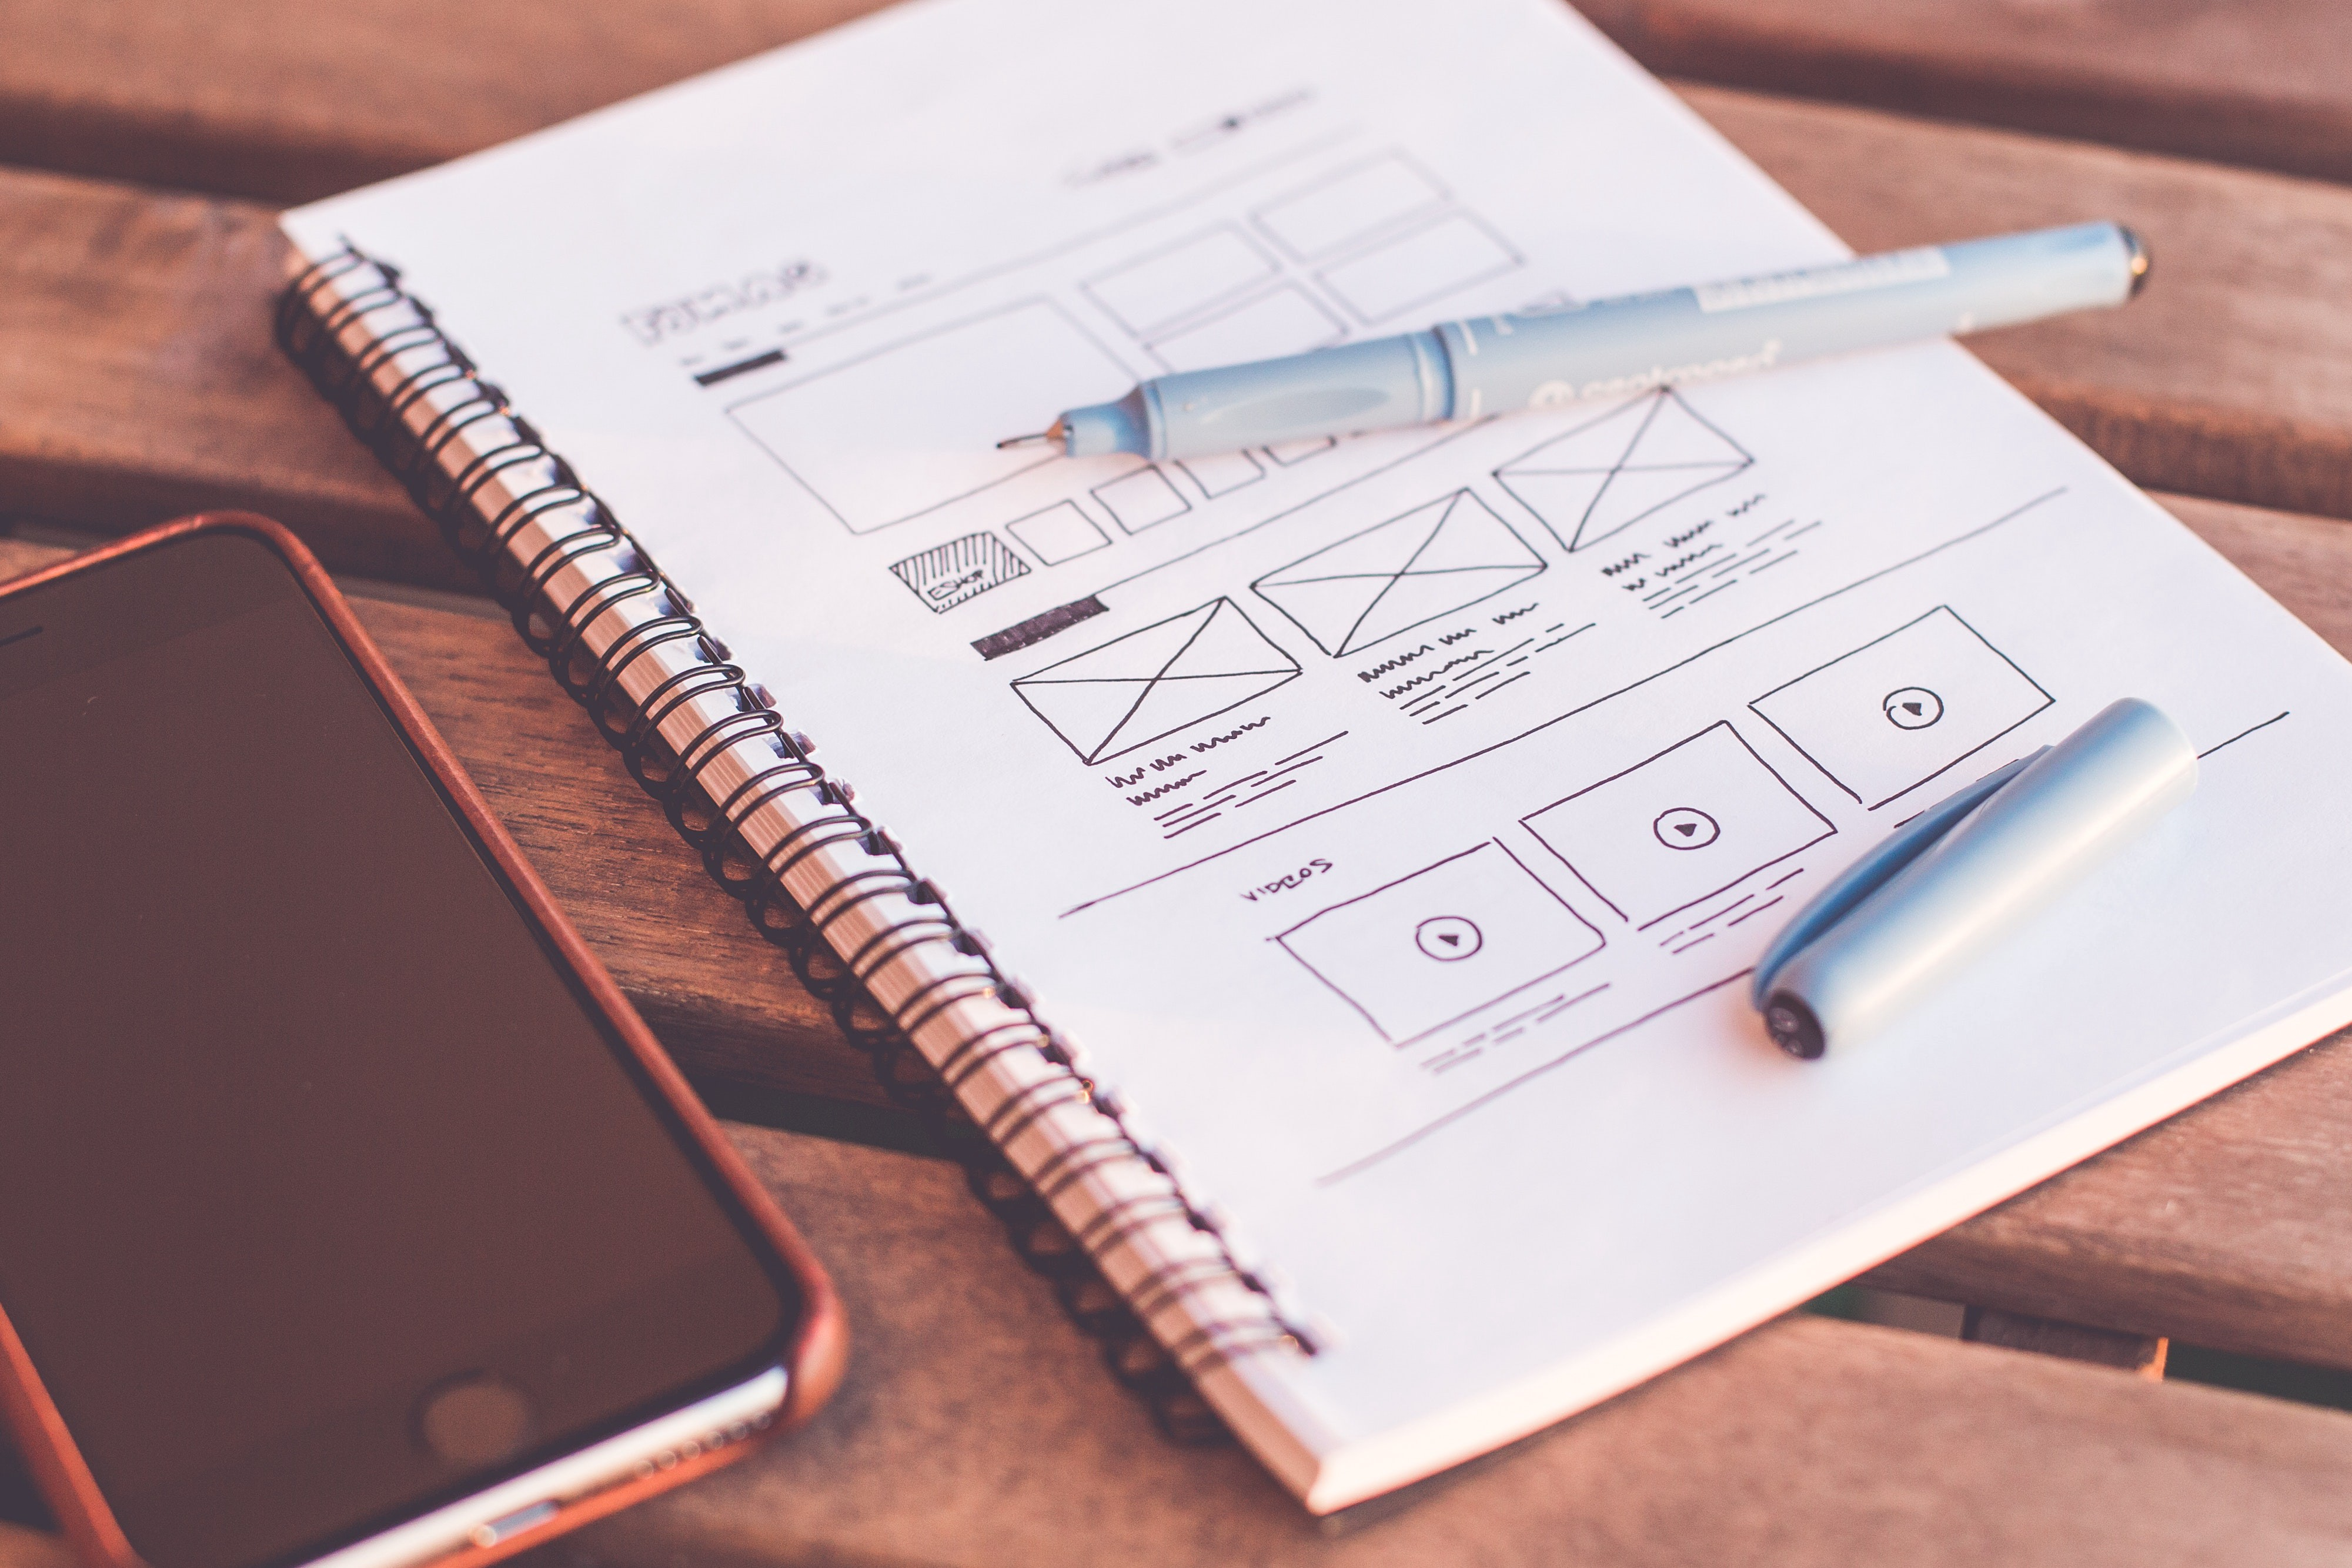 Wireframe, Mockup, Prototype: What is What? - UX Planet